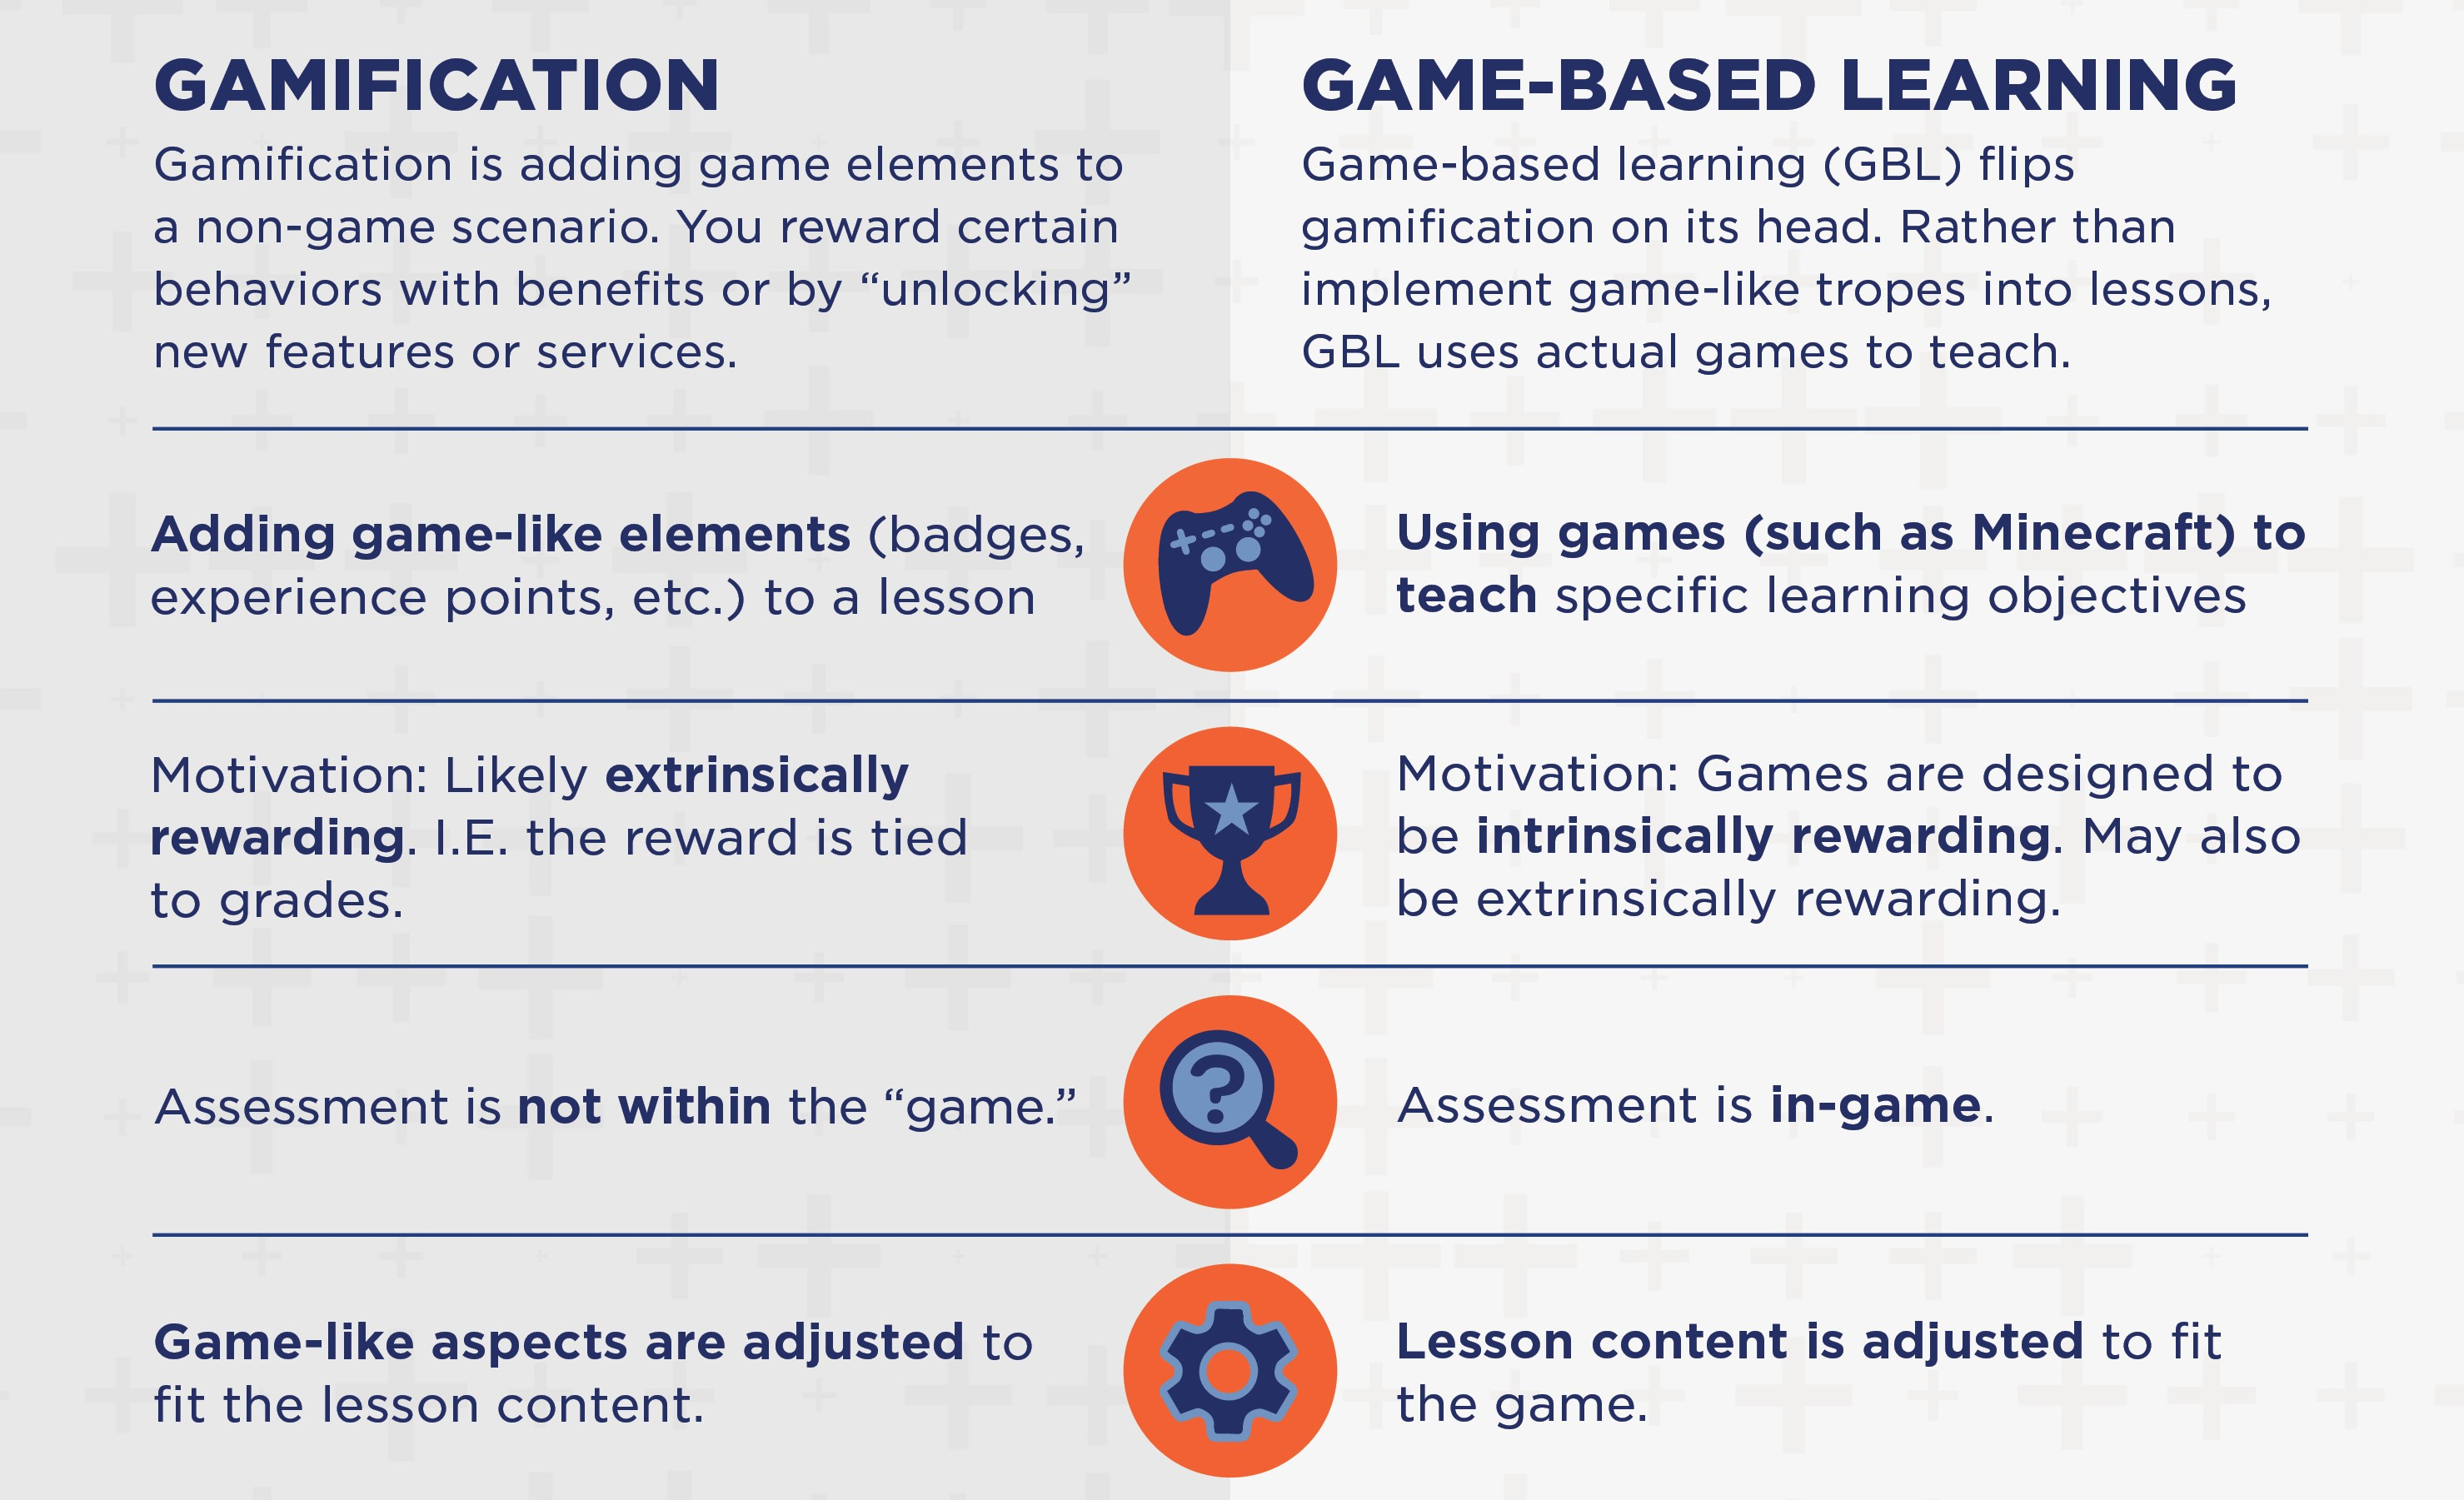 An infographic published by EdSurge outlining the differences between gamification and game-based learning.